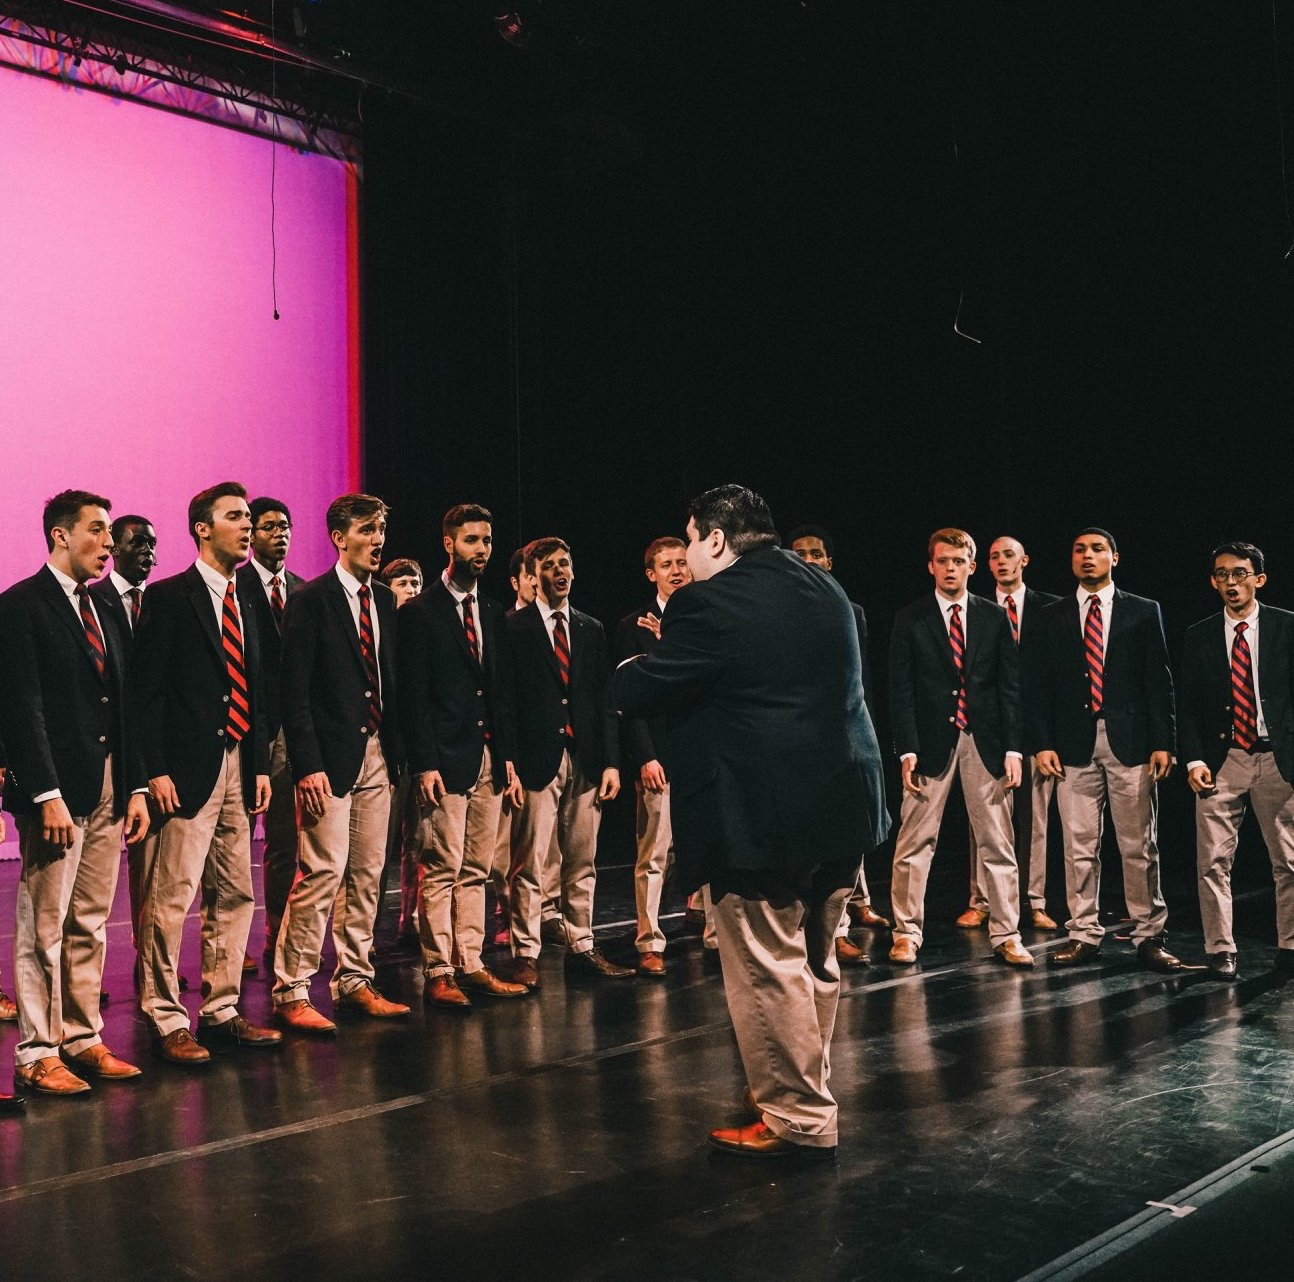 Several students singing while standing on a stage